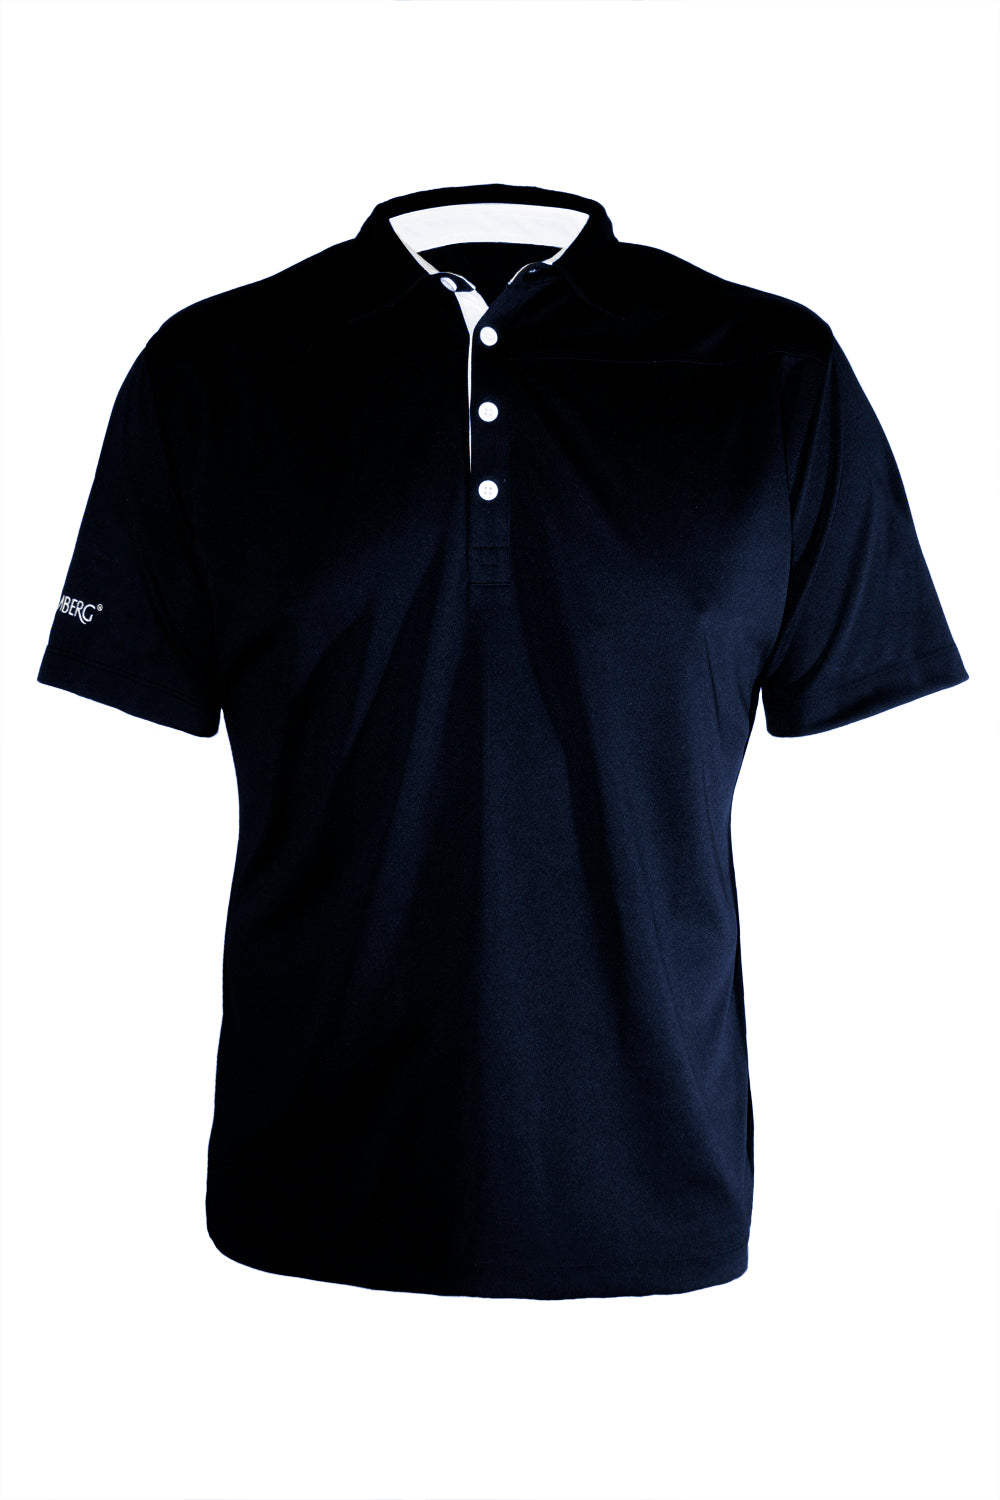 Tech Shirt 3 - Navy - Cool Dry - Moisture Managed - Fitted